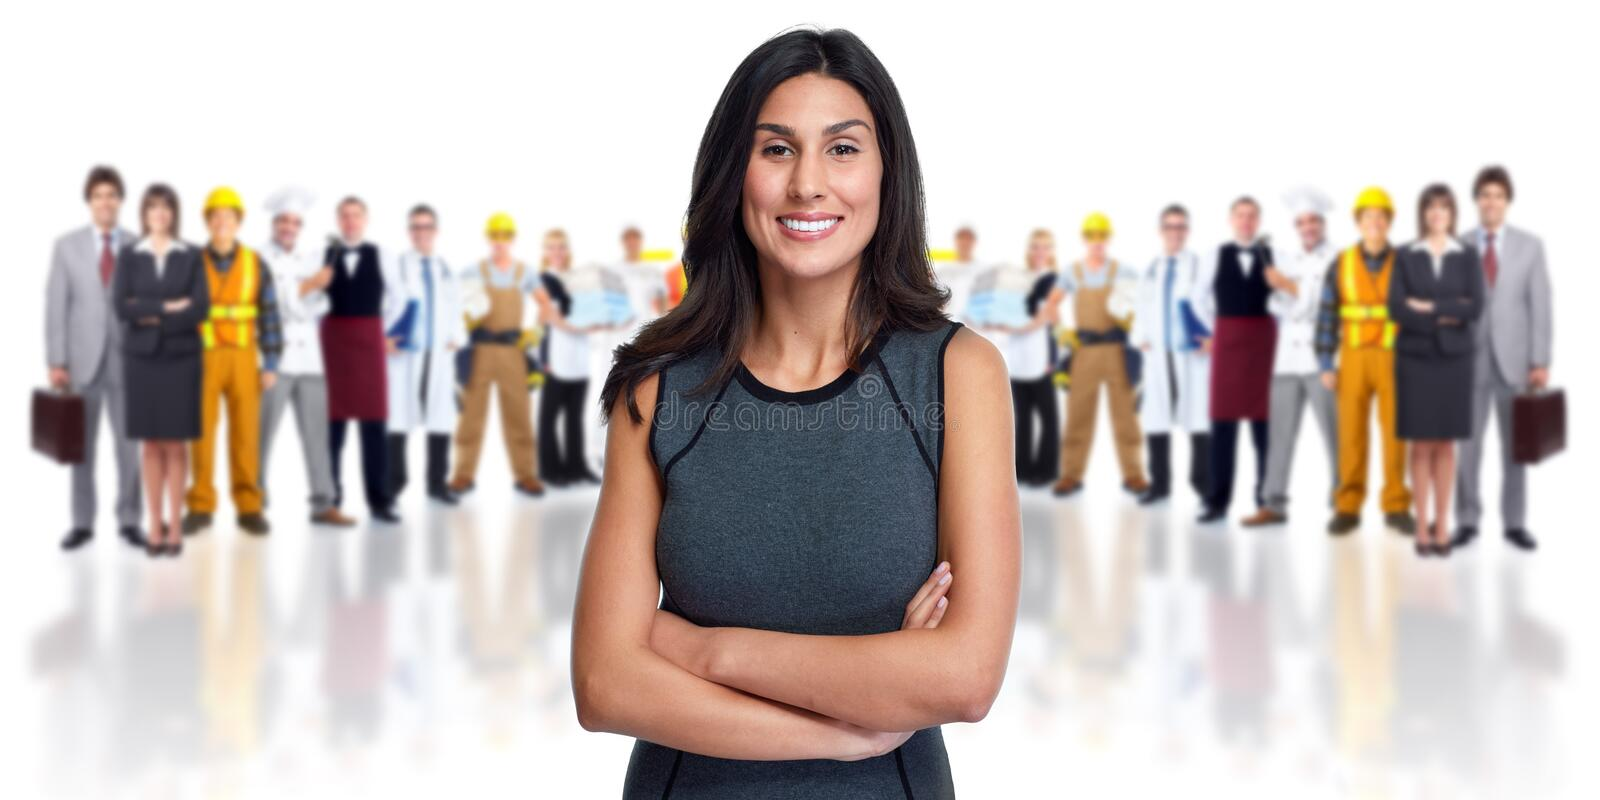 Business team. Young smiling business woman workers group background royalty free stock photos